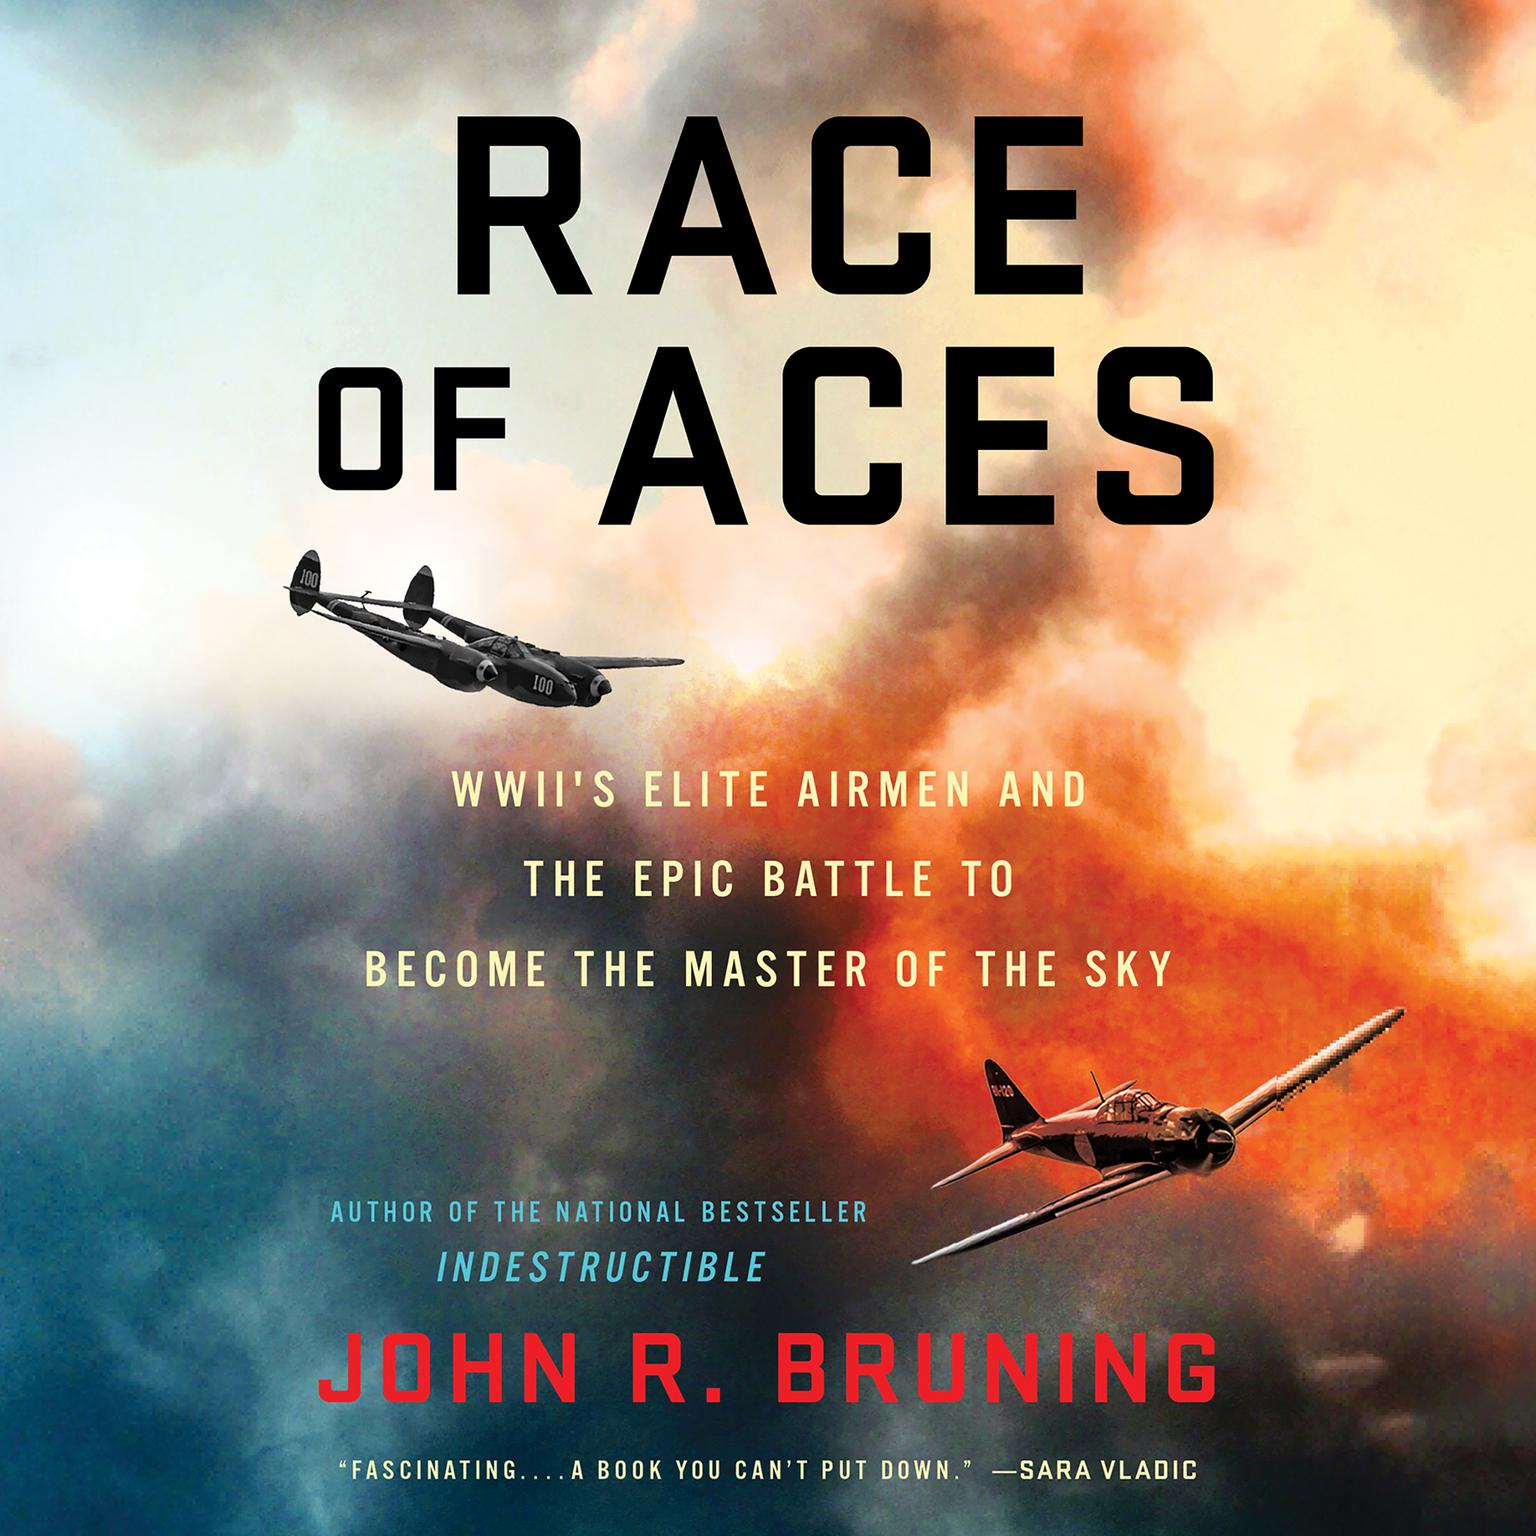 Printable Race of Aces: WWII's Elite Airmen and the Epic Battle to Become the Master of the Sky Audiobook Cover Art